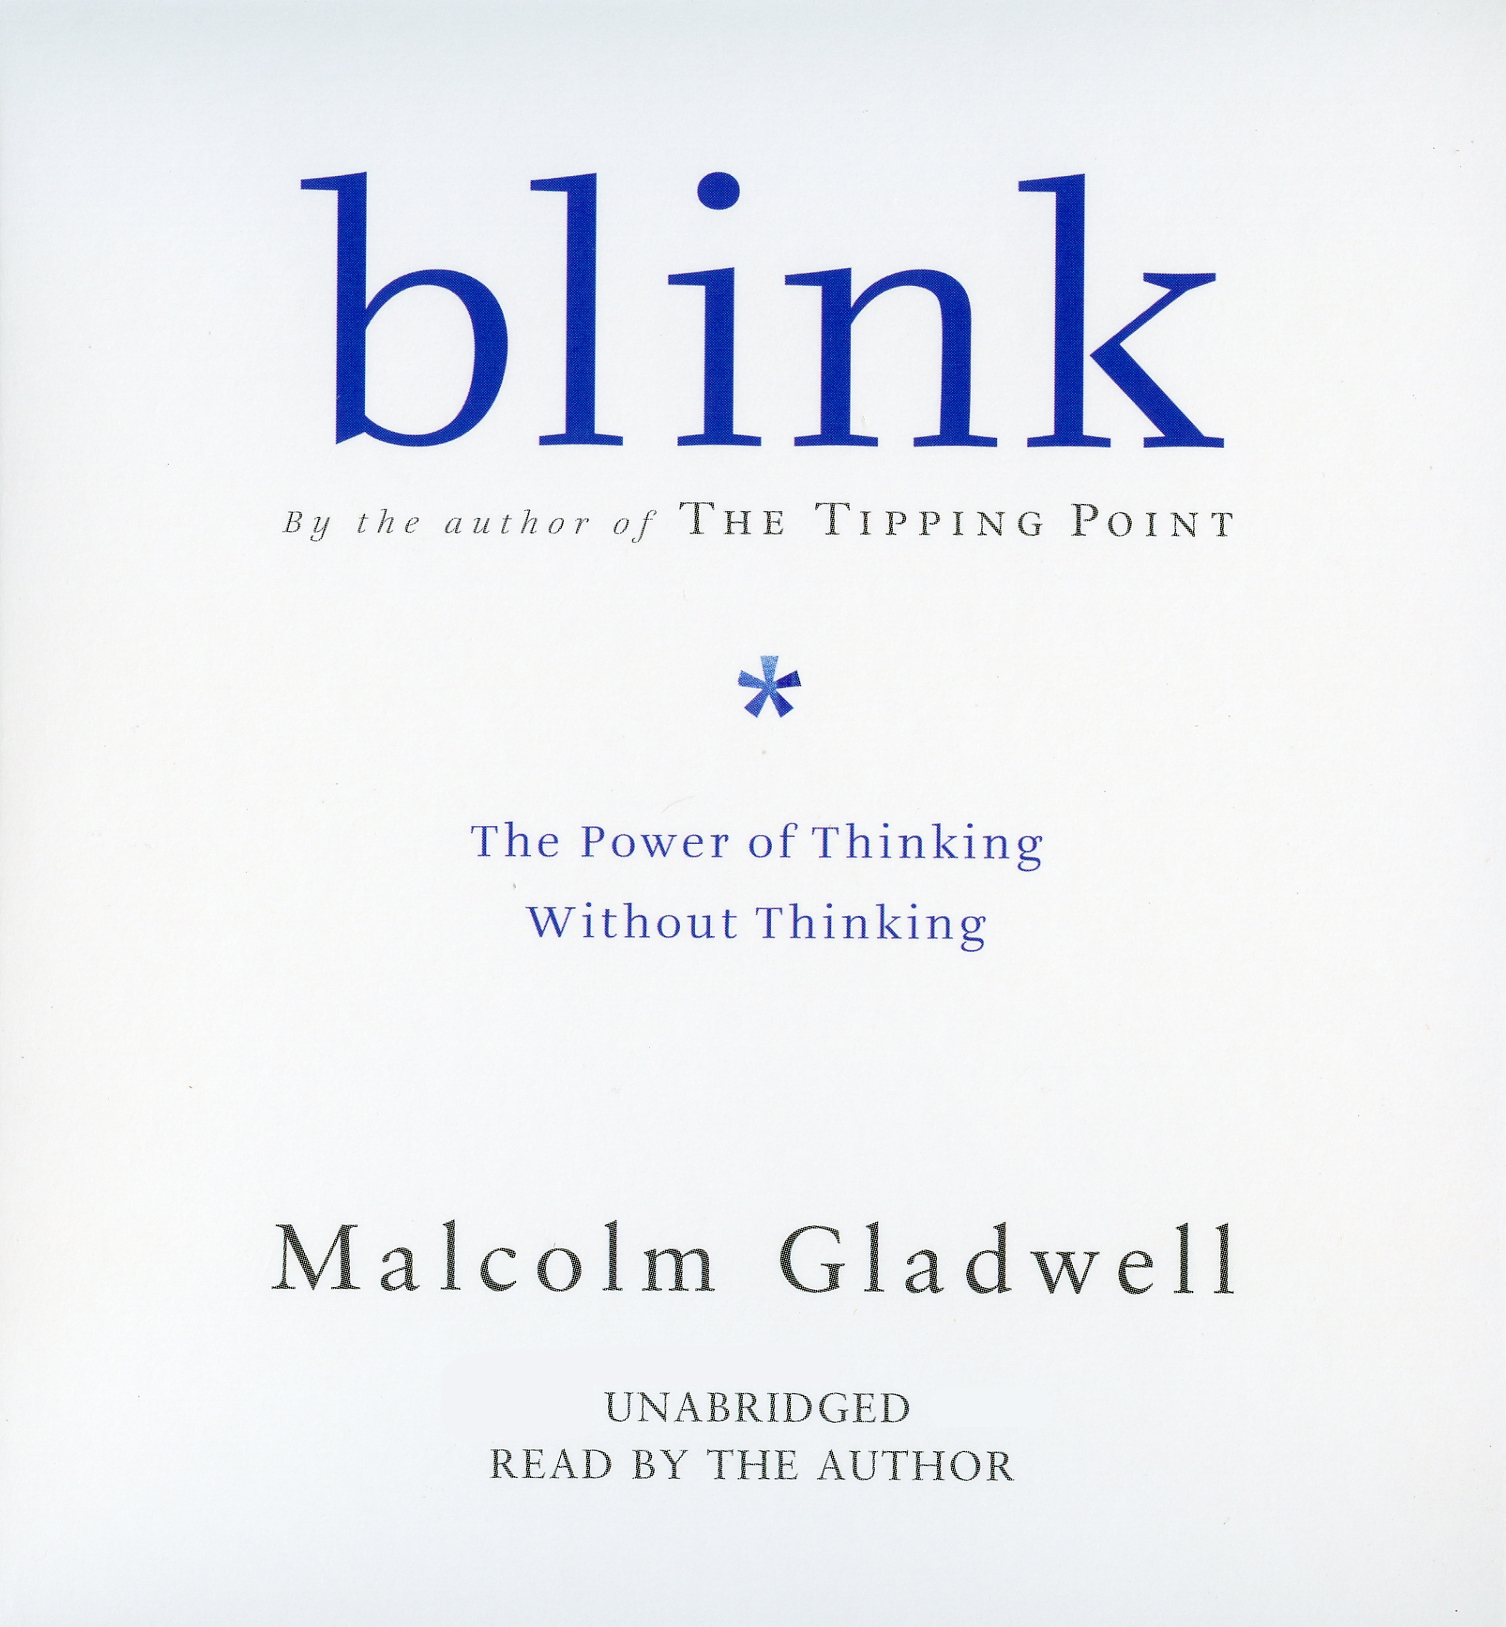 image for Blink: The Power of Thinking Without Thinking